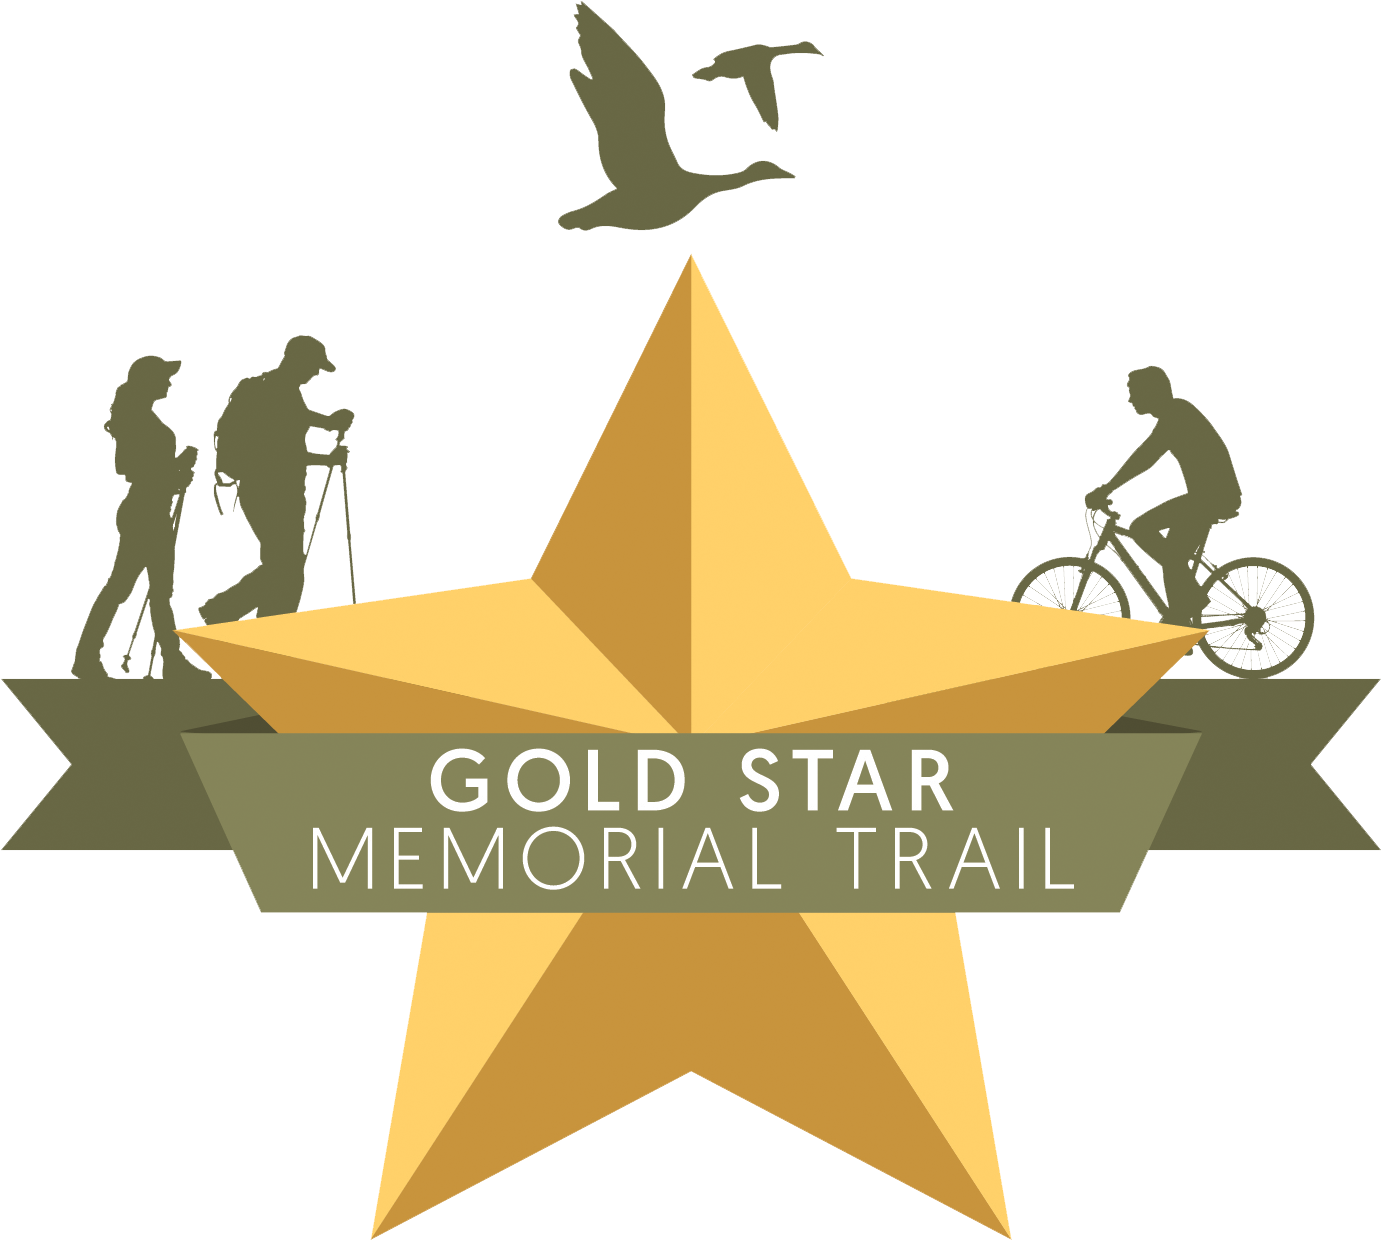 Transparent gold star clipart - Image Of A Gold Star Group Svg Free - Gold Star Memorial Trail